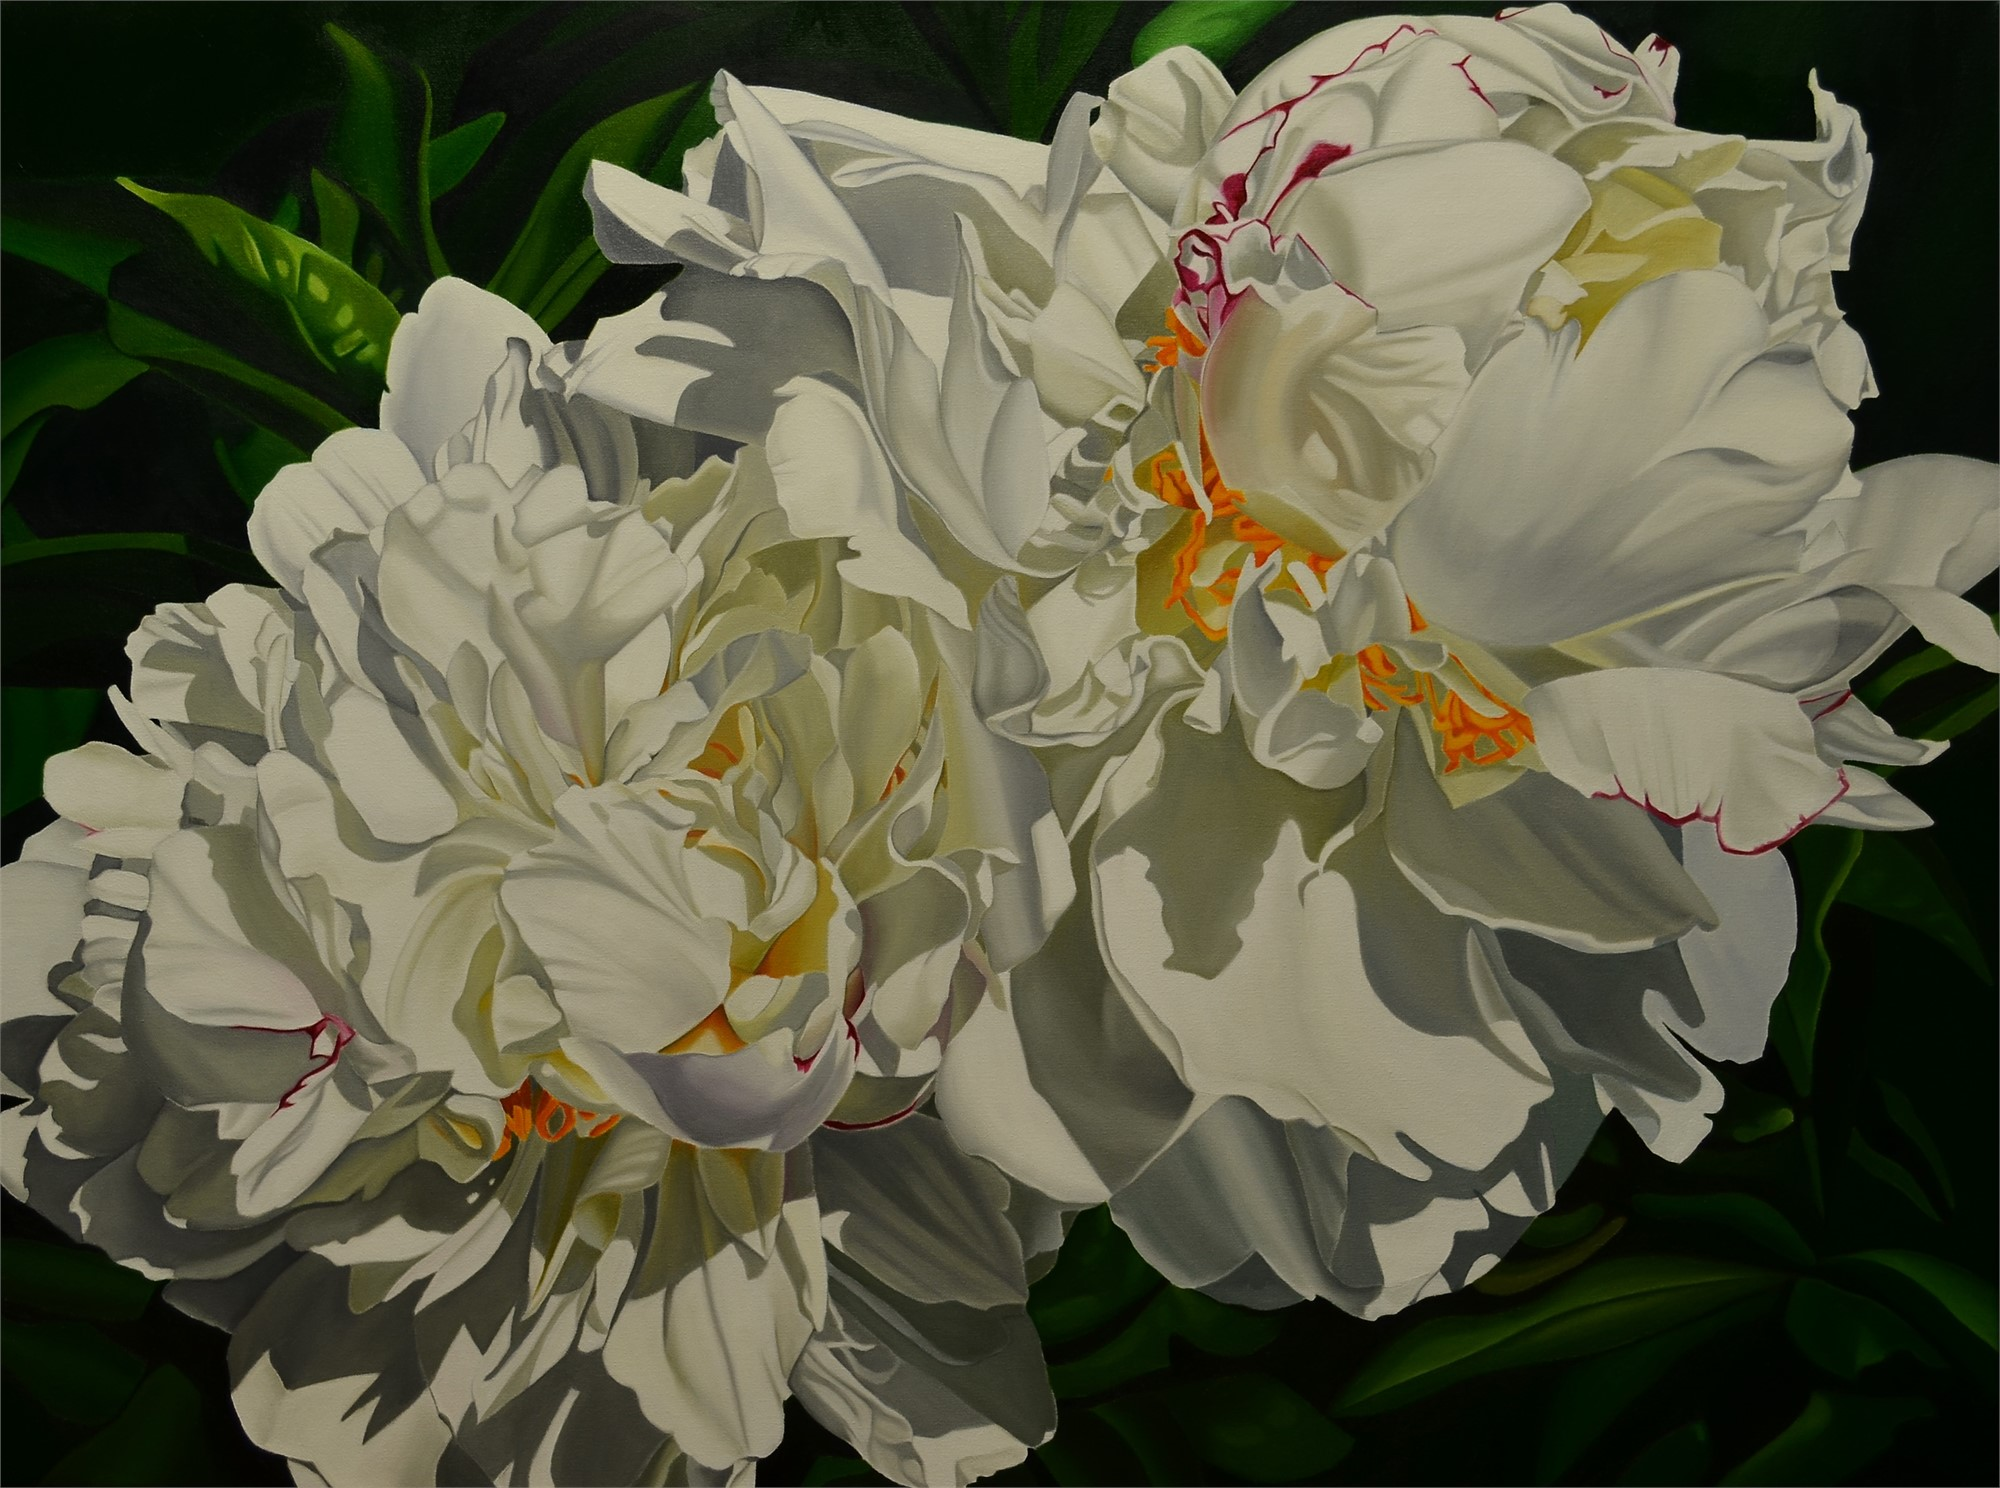 Wyoming Peonies by Suzy Smith